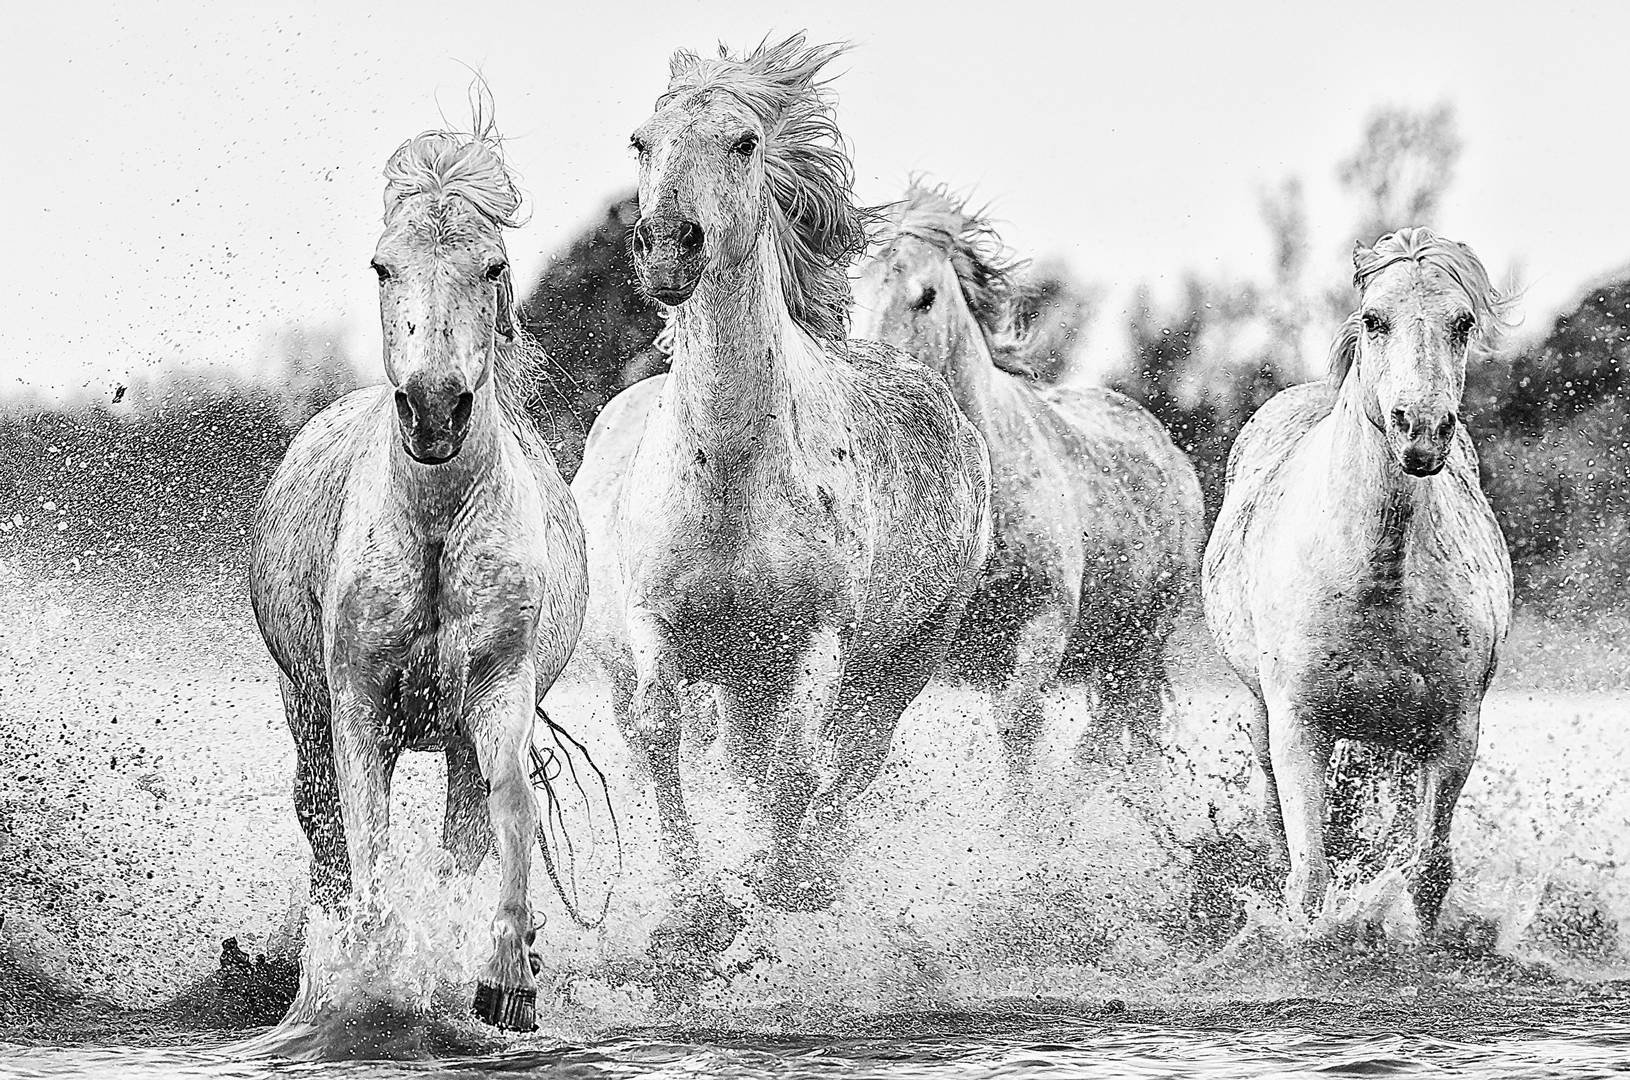 Camargue Horses Wildlife photography tour and expeditions